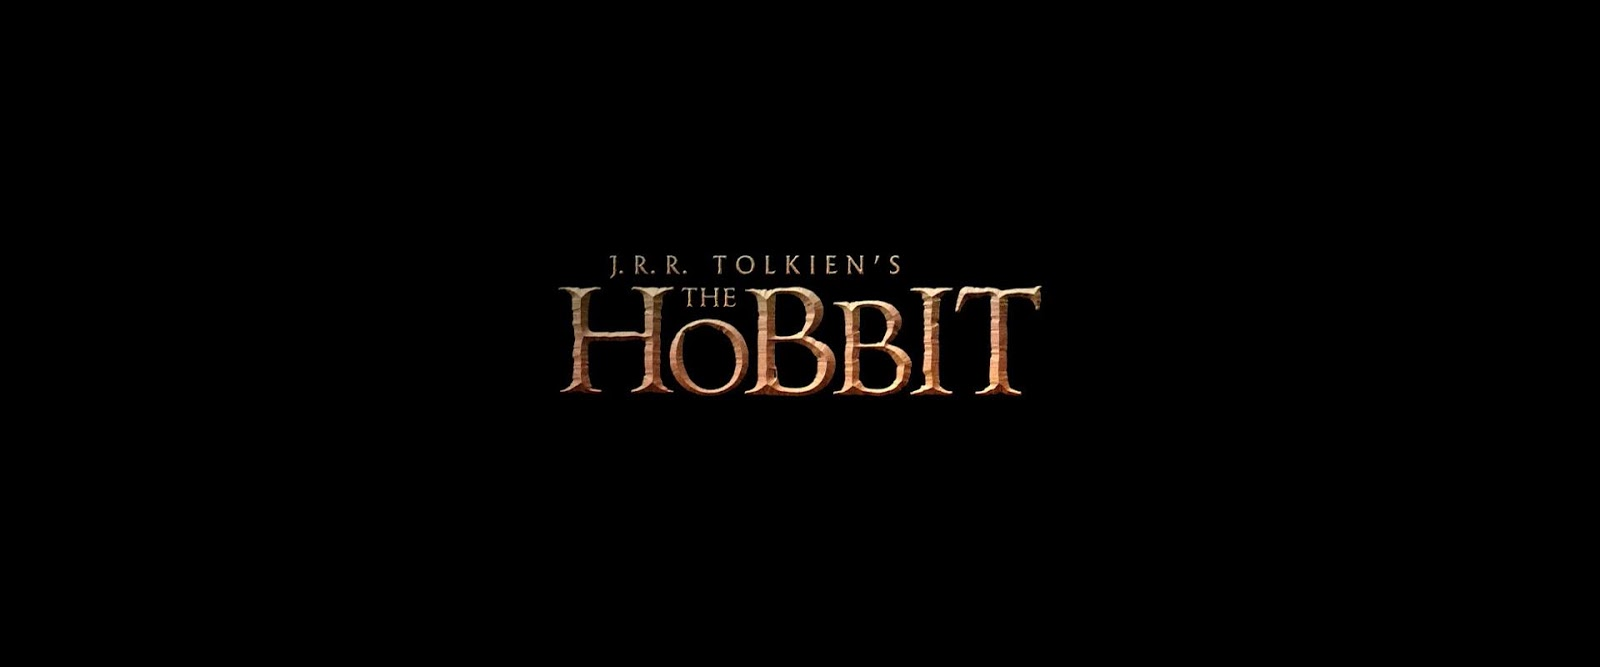 a review of the hobbit by jrr tolkien This item: the hobbit by j r r tolkien paperback cdn$ 1453 in stock ships from and sold by more_for_u review `one of the best loved characters in english.